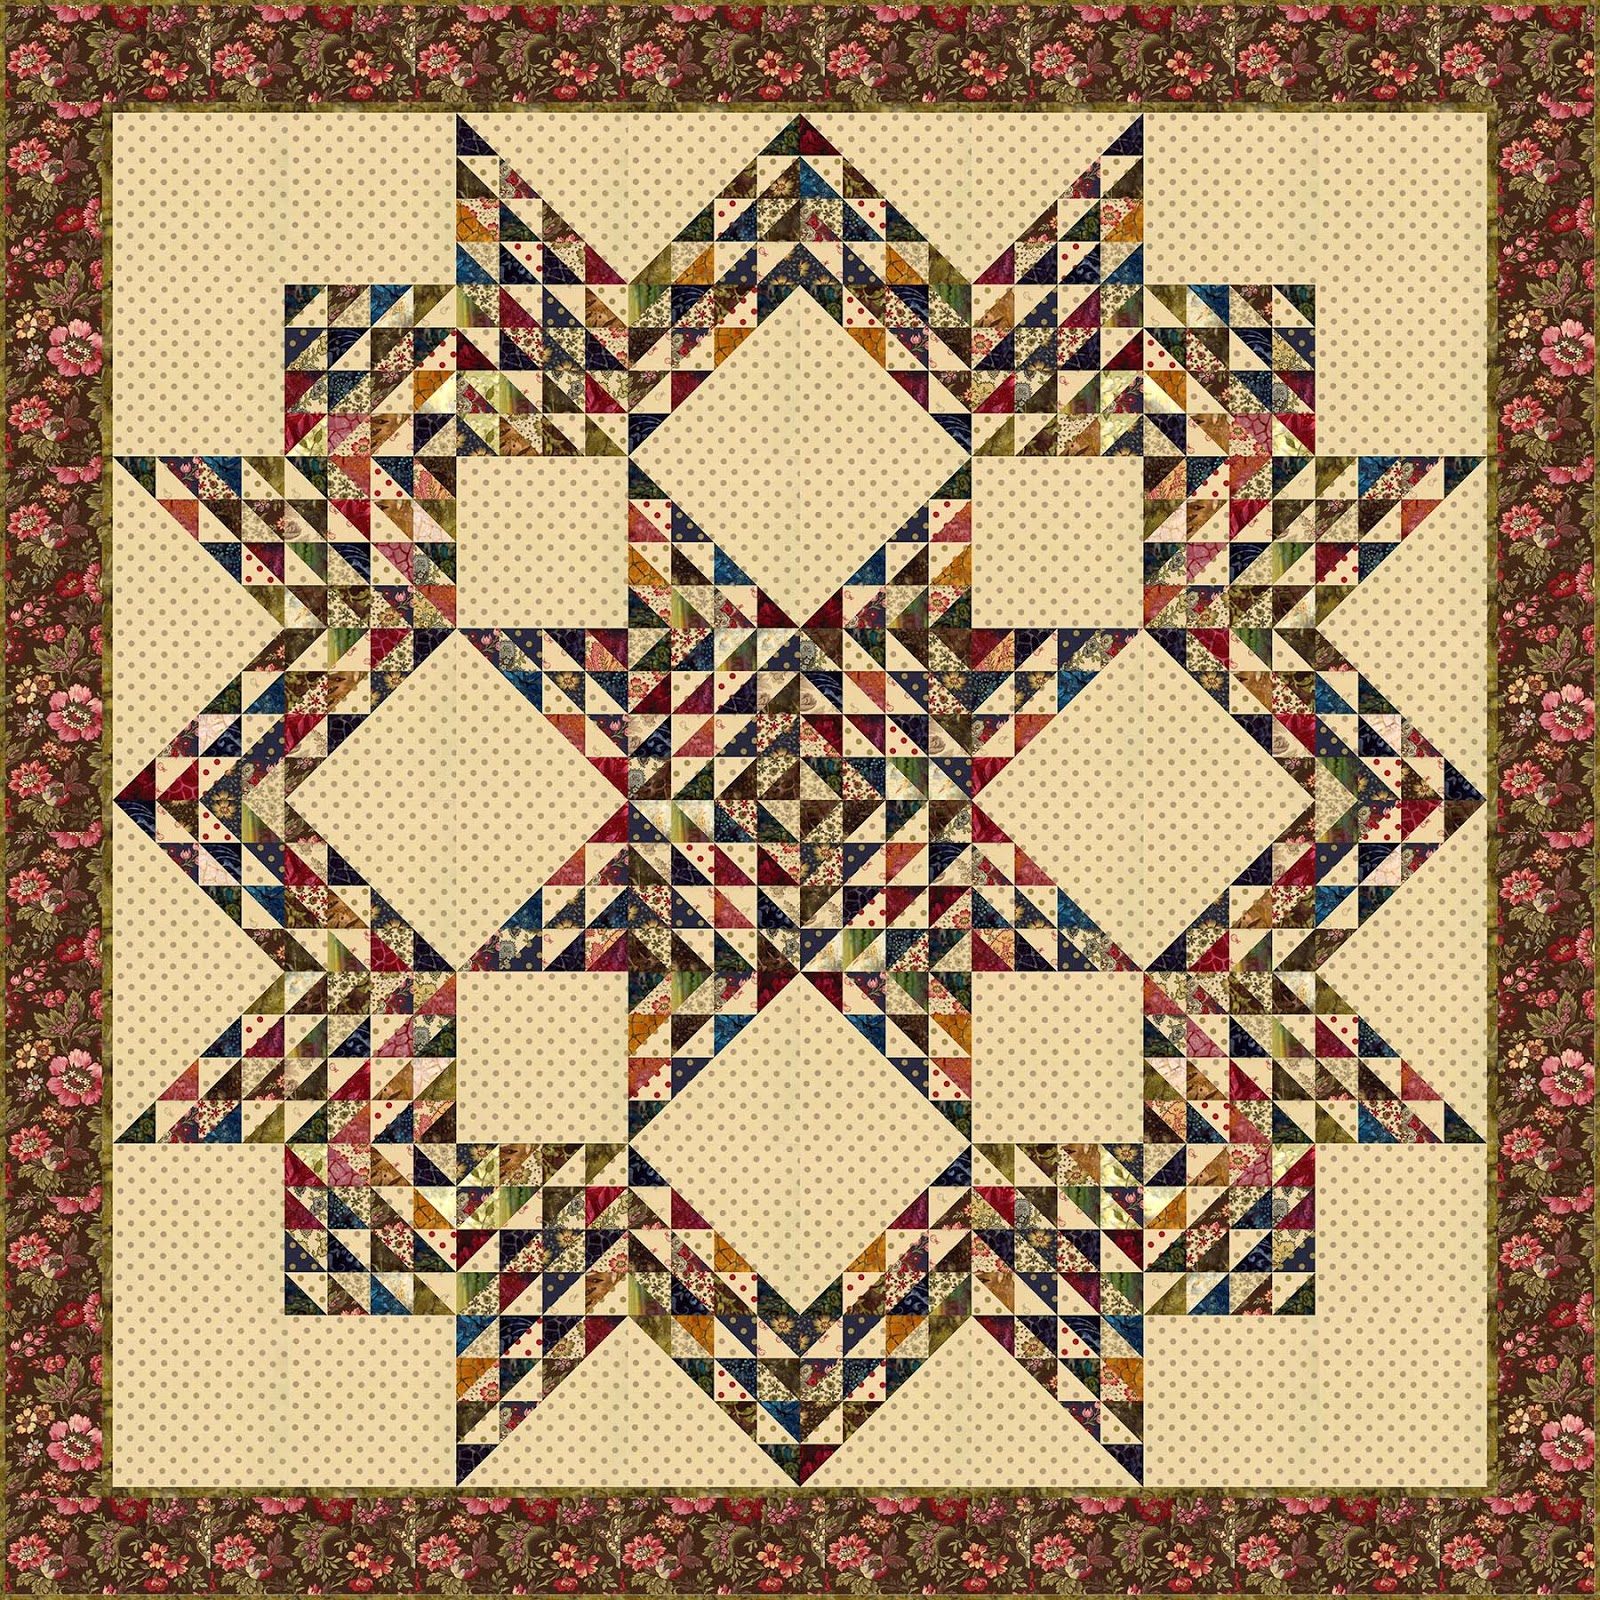 Quilt Designs With Triangles : Moda... the Cutting Table: Afraid of Applique? Edyta Sitar Offers a Solution